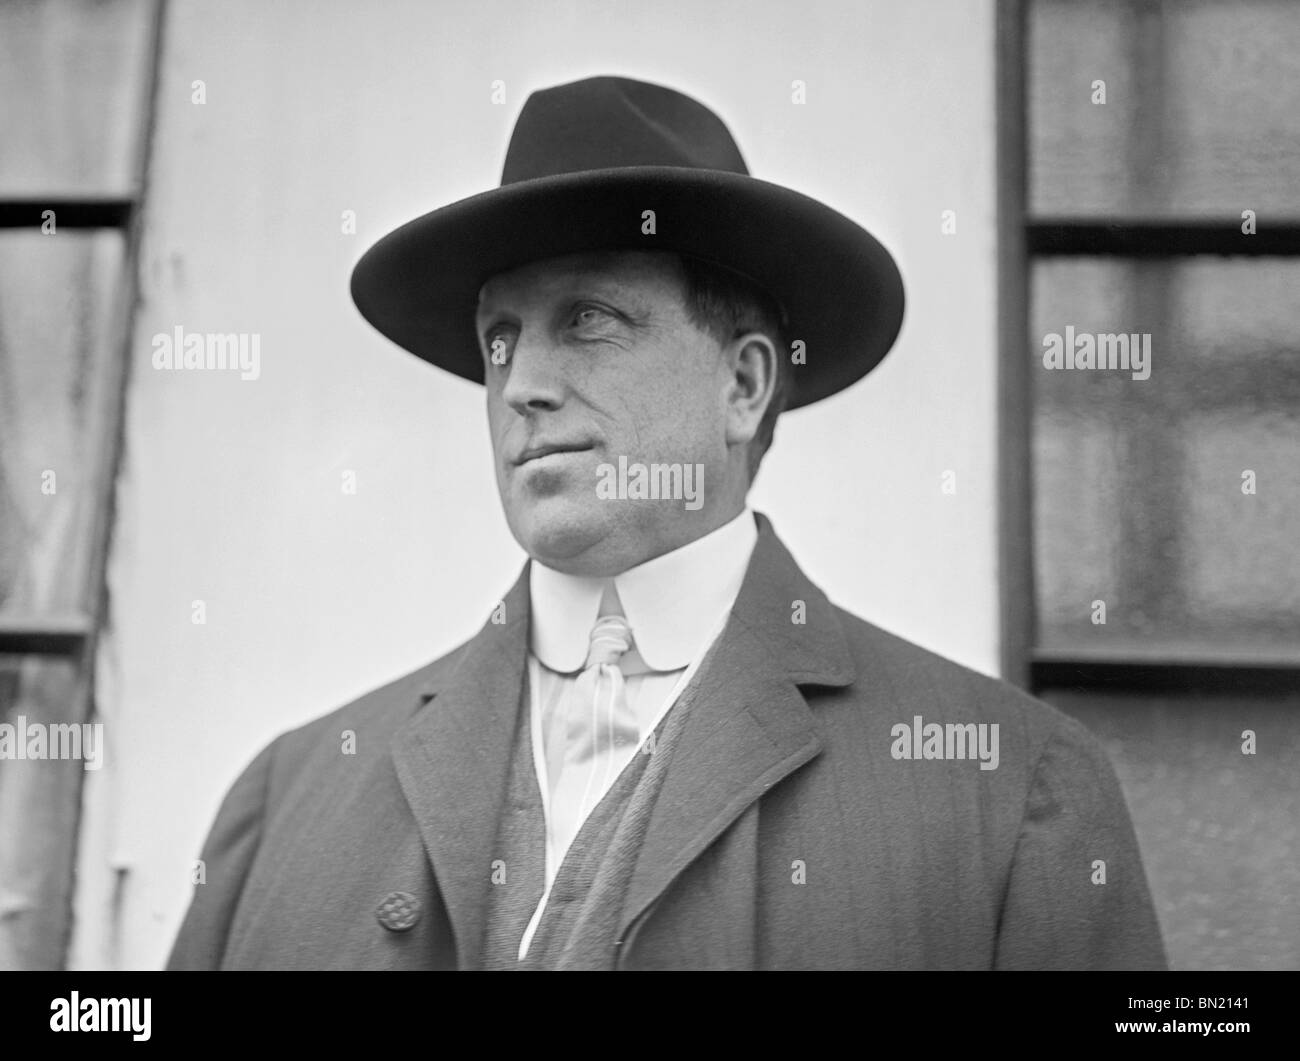 Photo circa 1910 of American newspaper magnate + leading publisher William Randolph Hearst (1863 - 1951). - Stock Image